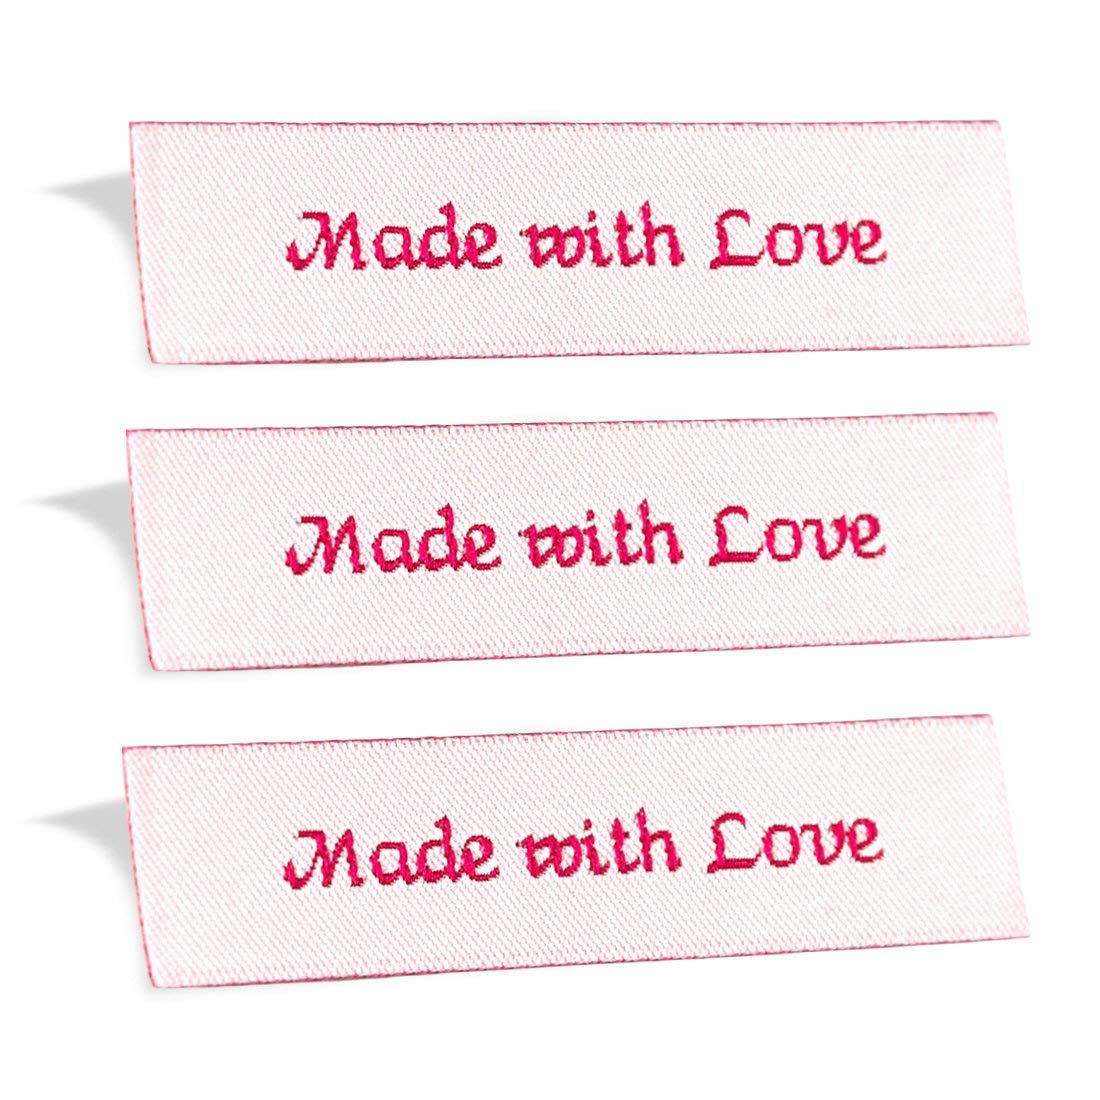 0bc8ccc1f0b0 Cheap Woven Clothing Labels Uk, find Woven Clothing Labels Uk deals ...